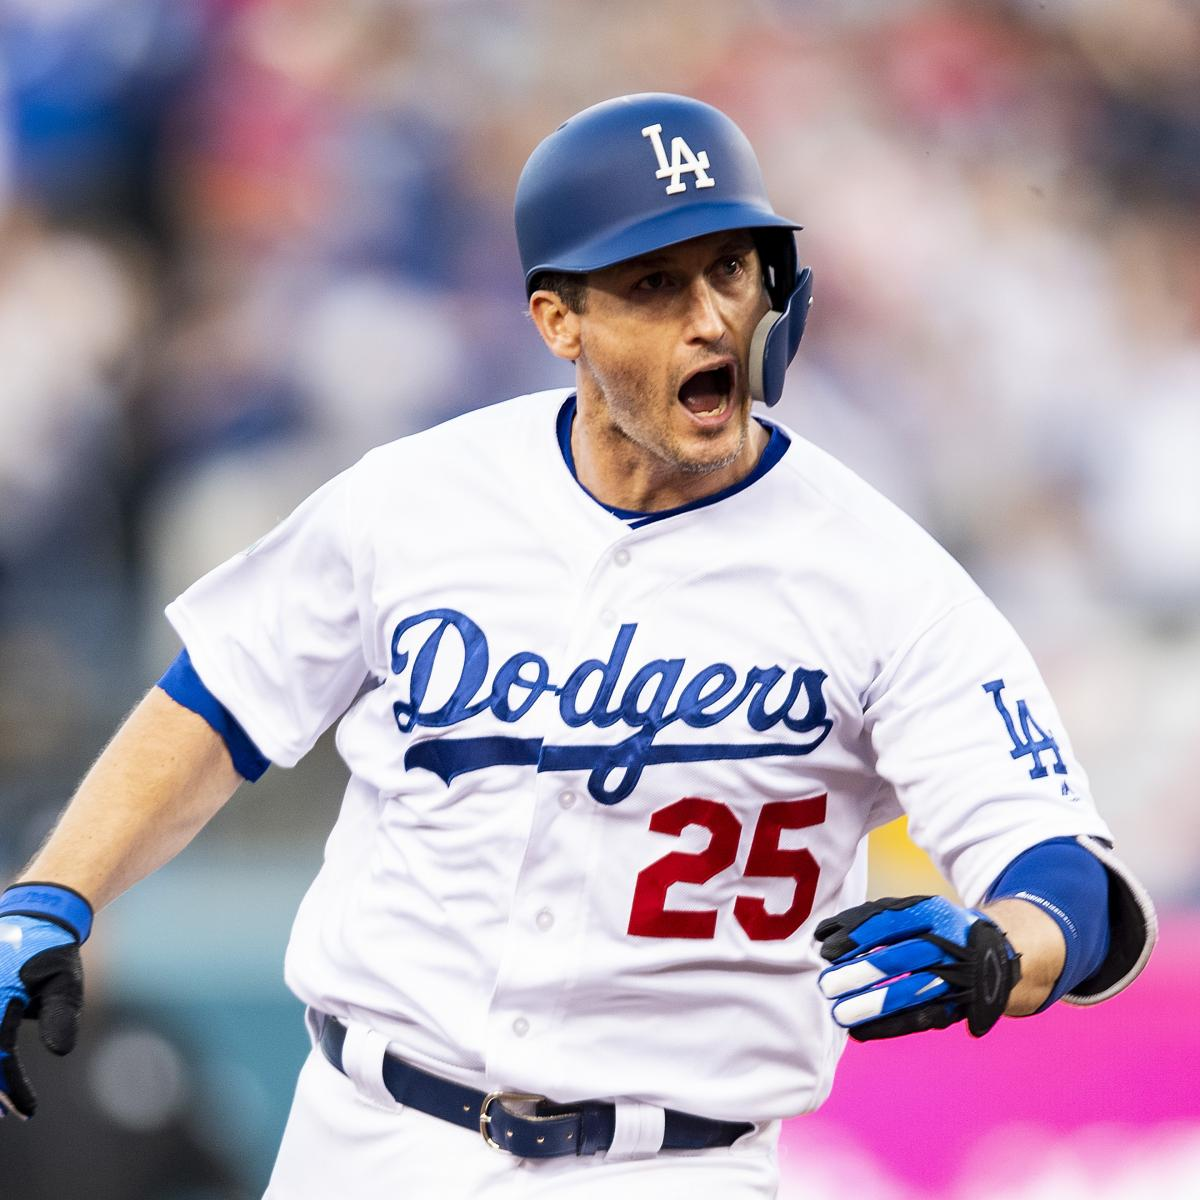 David Freese Reportedly Agrees to Re-Sign with Dodgers on 1-Year Contract